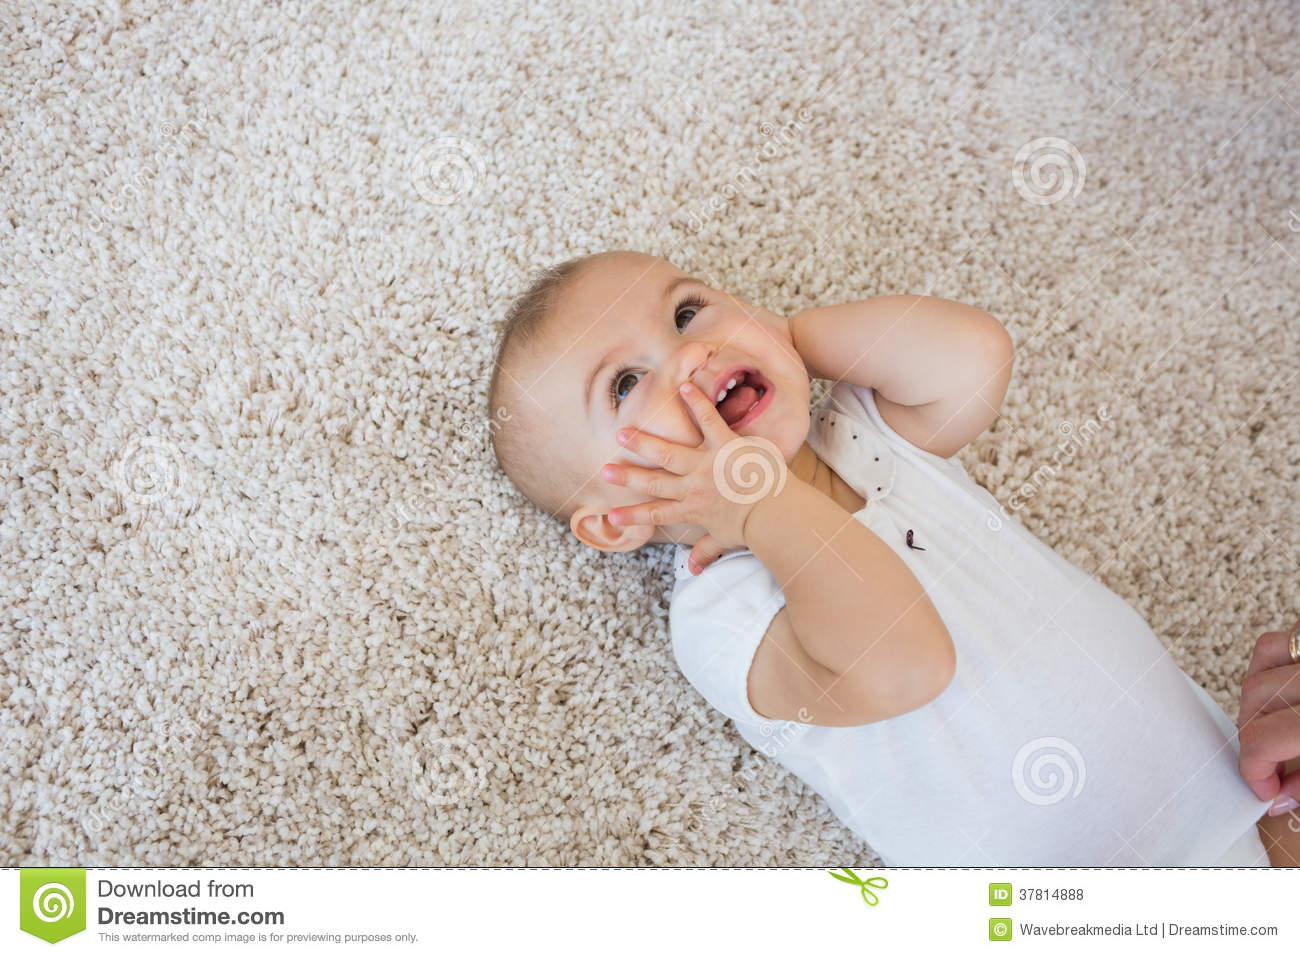 how to clean up spilled milk on carpet